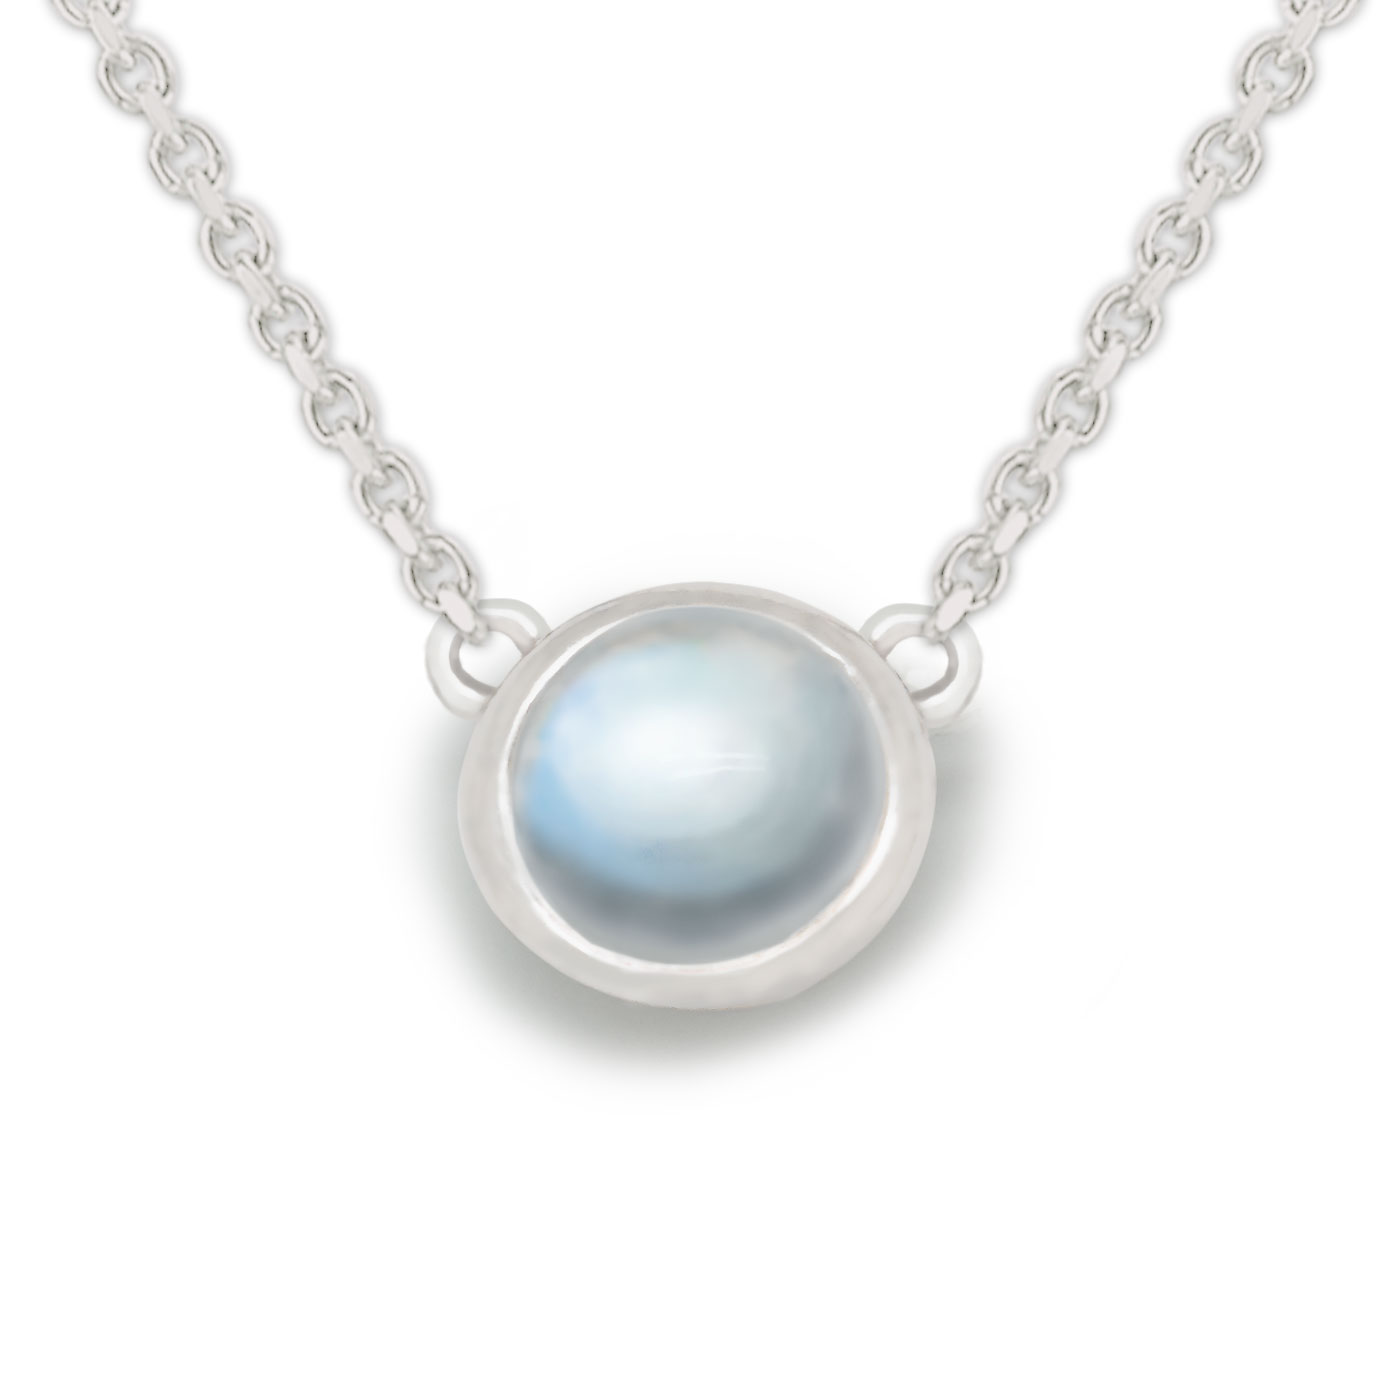 Concise Round 925 Sterling Silver Sri Lanka Genuine Moonstone Necklace цена